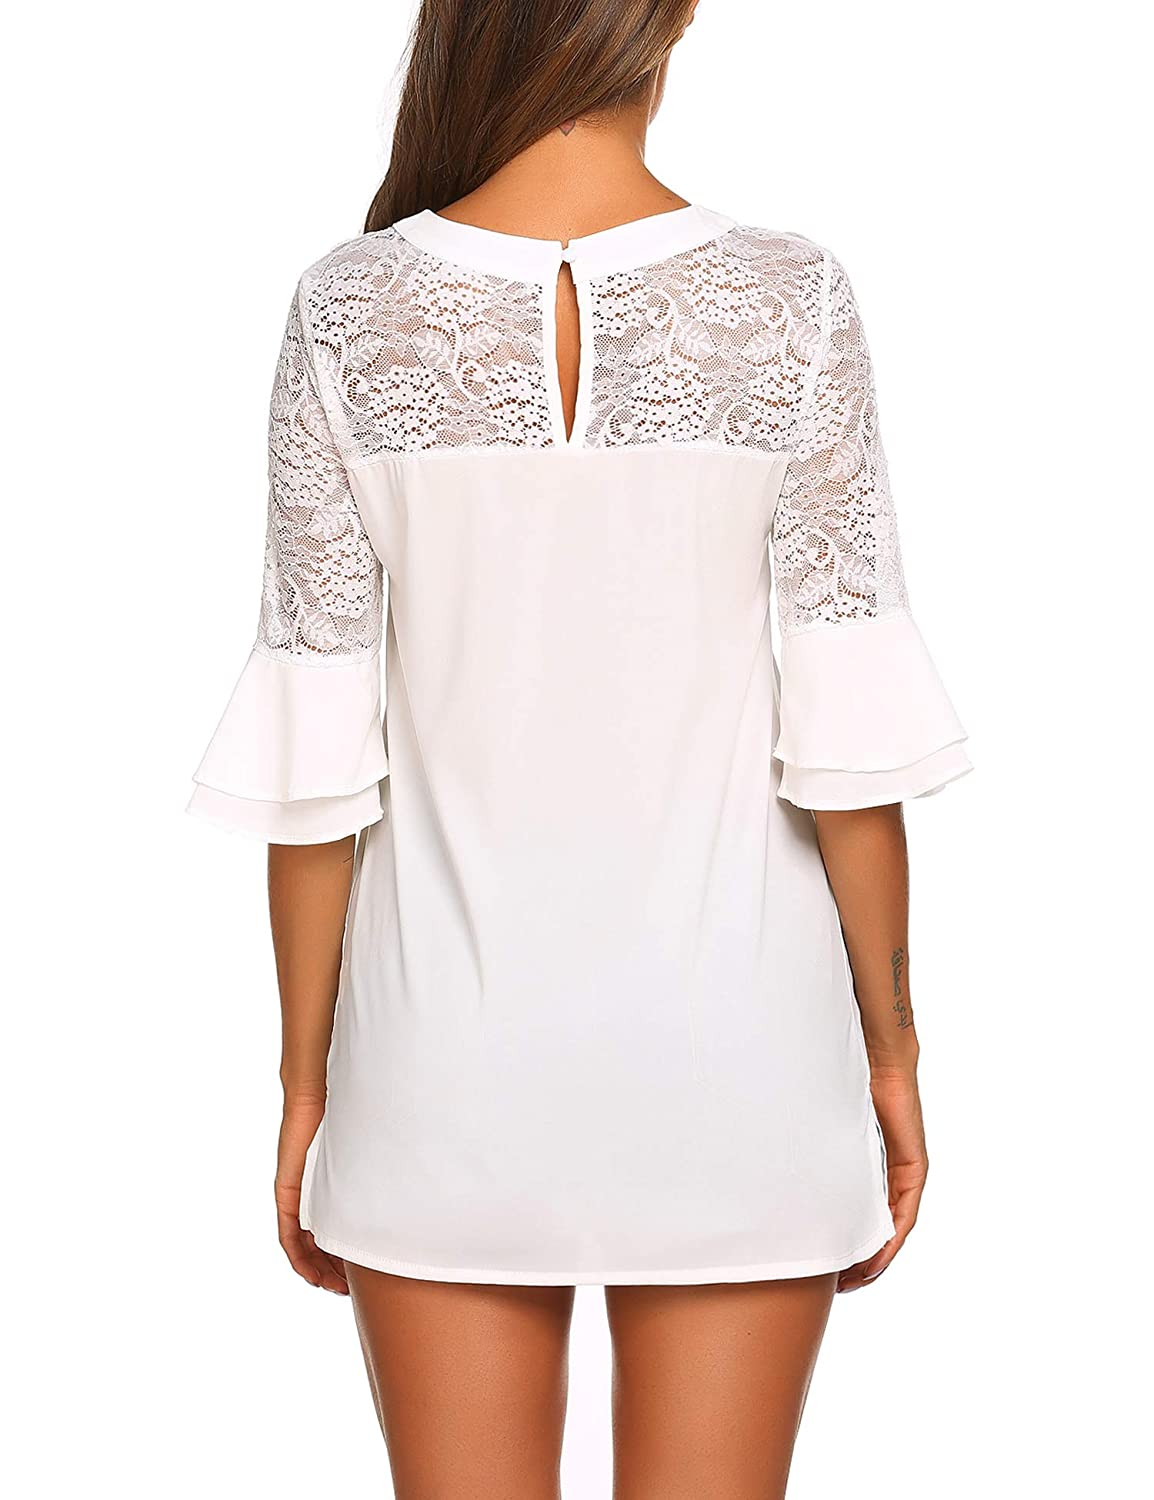 SoTeer Womens Lace Casual Tunic Tops 3//4 Ruffle Bell Sleeve Blouses Shirts S-XXL